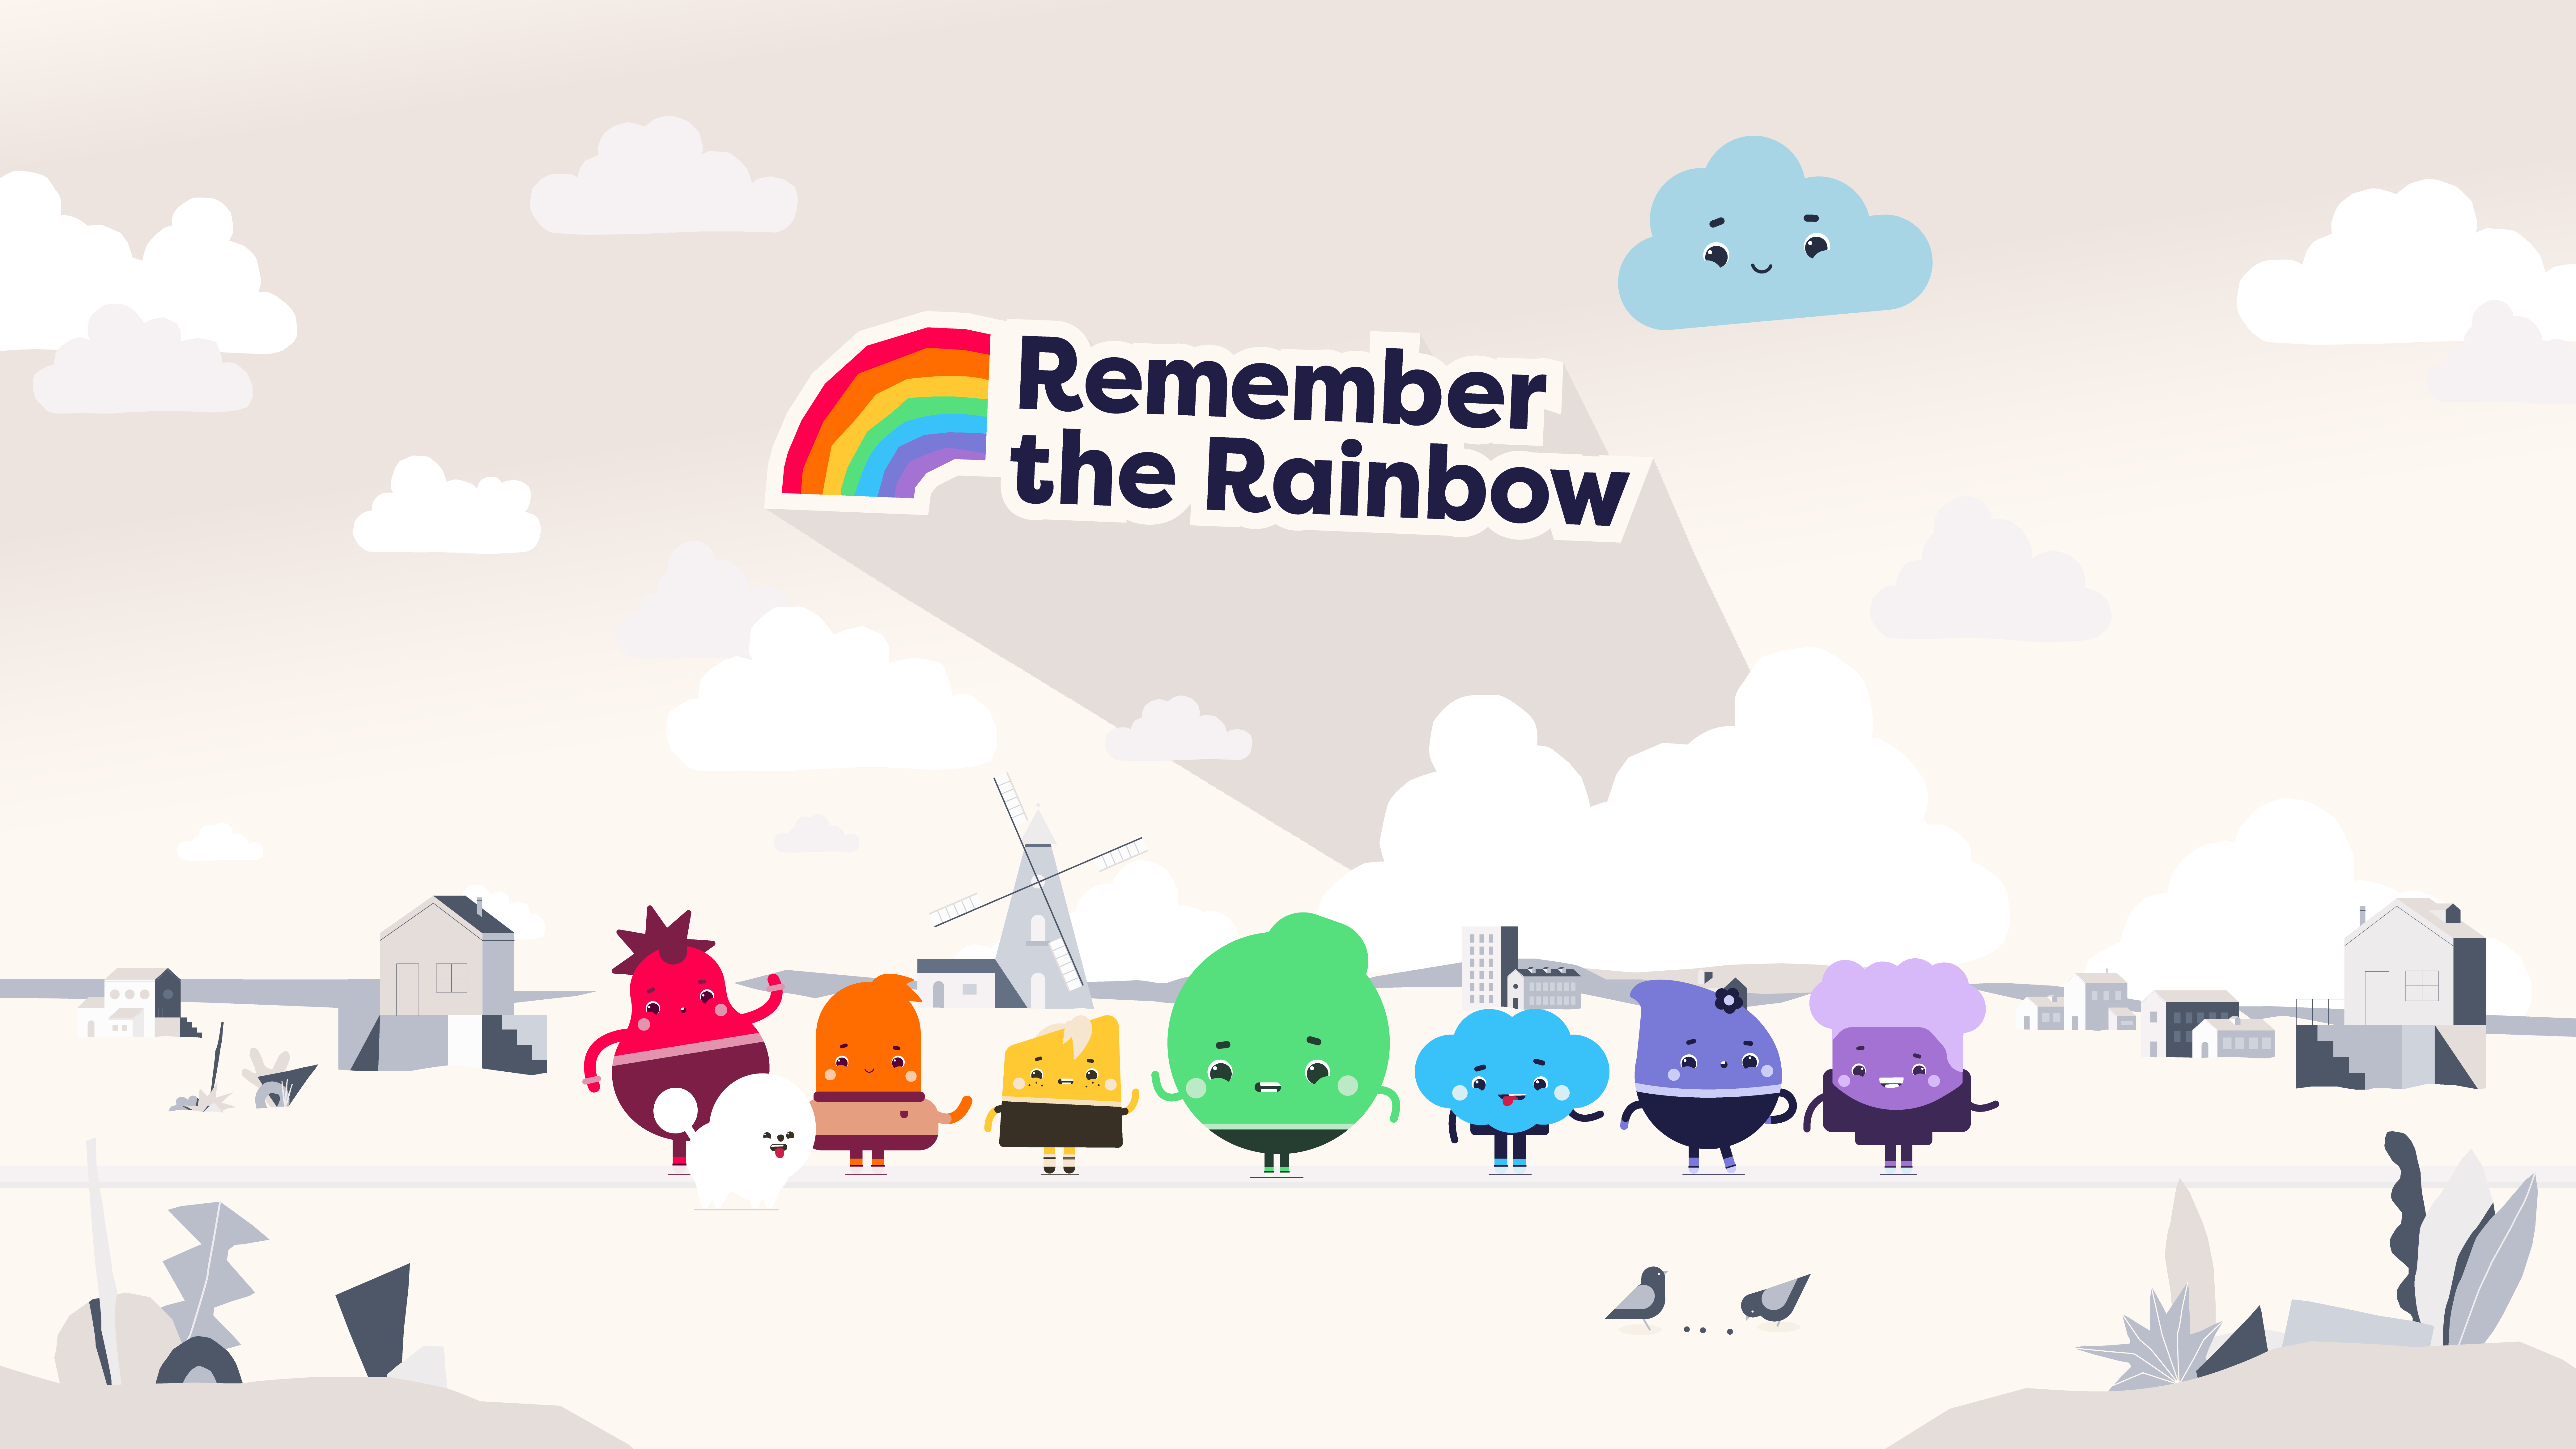 Cover image: Remember the Rainbow